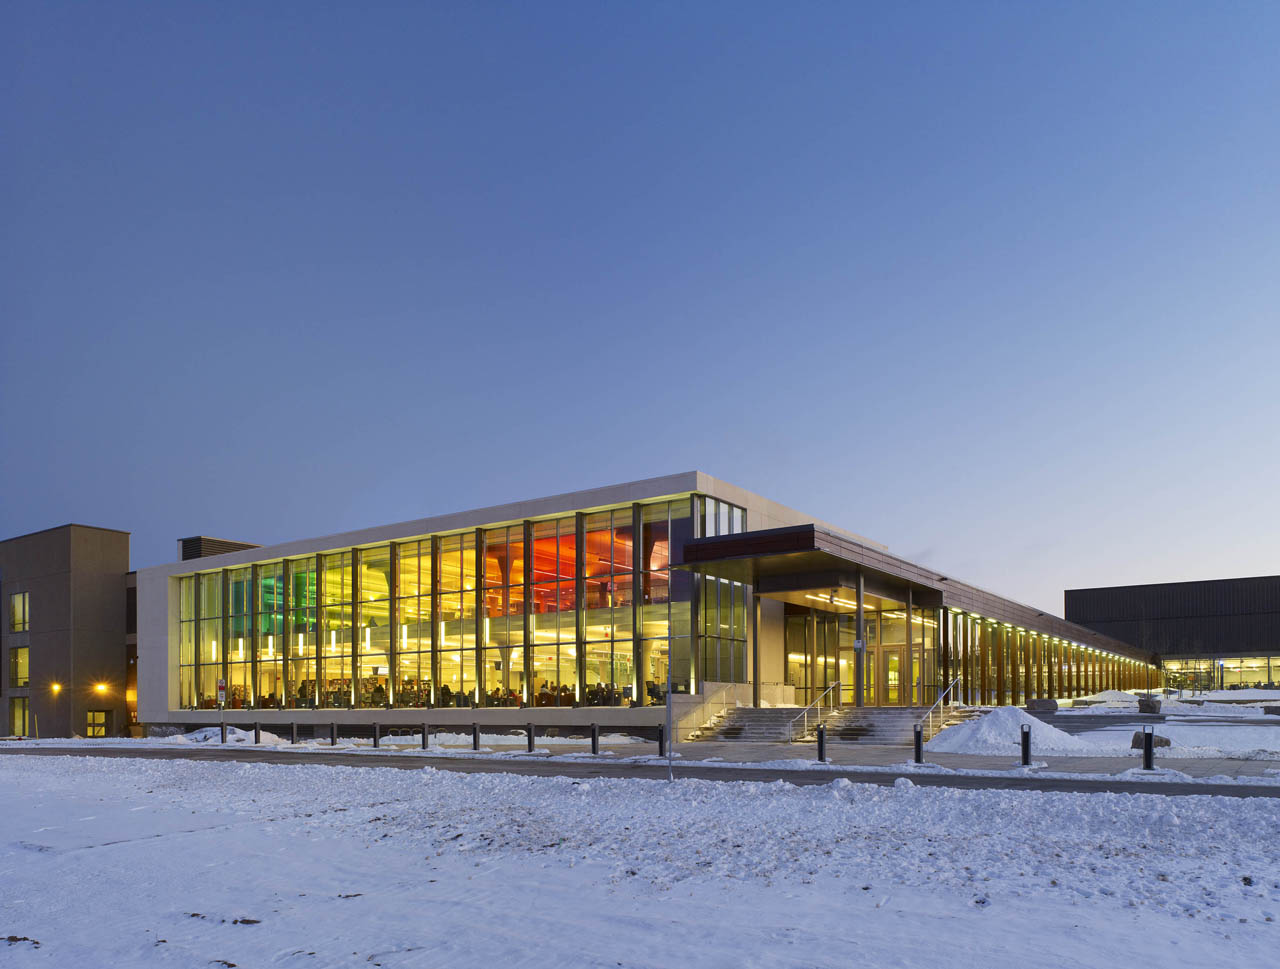 Mohawk College / Zeidler Partnership Architects, © Tom Arban